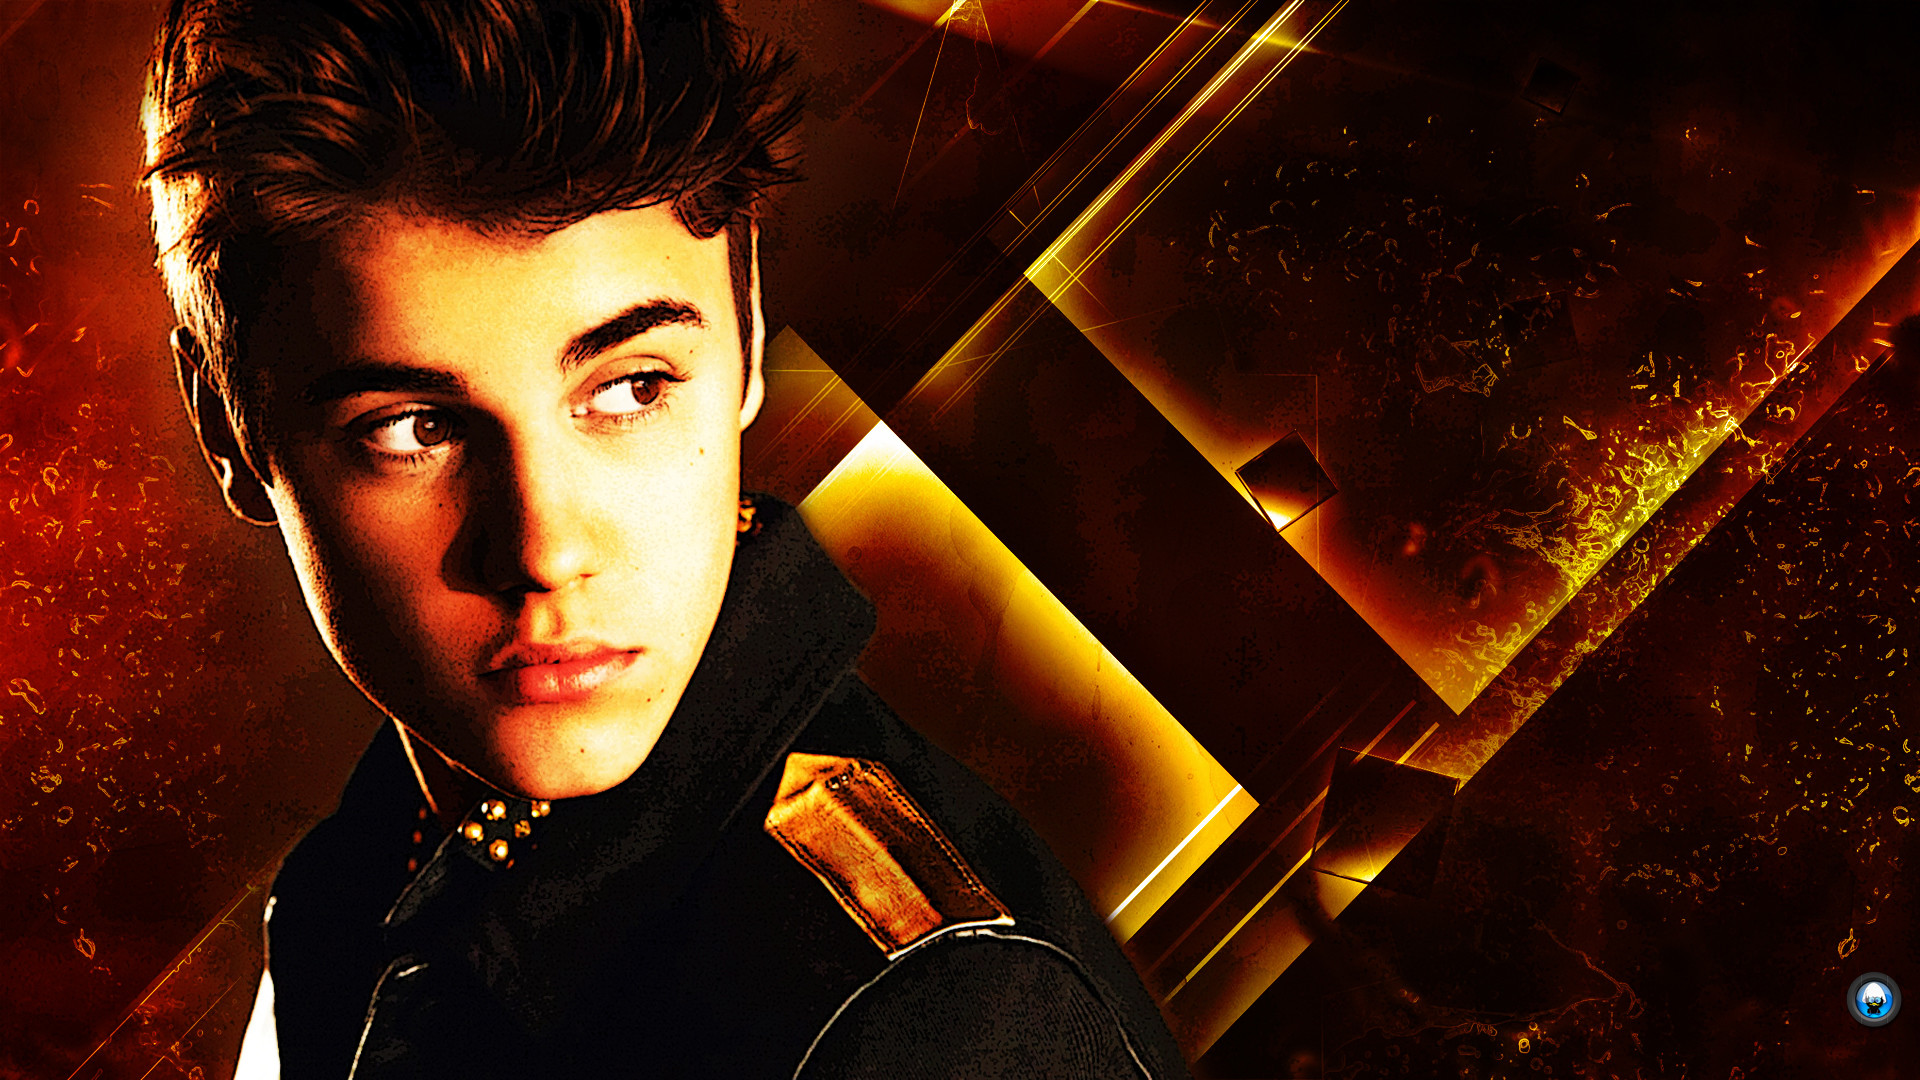 1920x1080 Justin Bieber HD Wallpapers 2014, QC878 Full HD Wallpapers For .